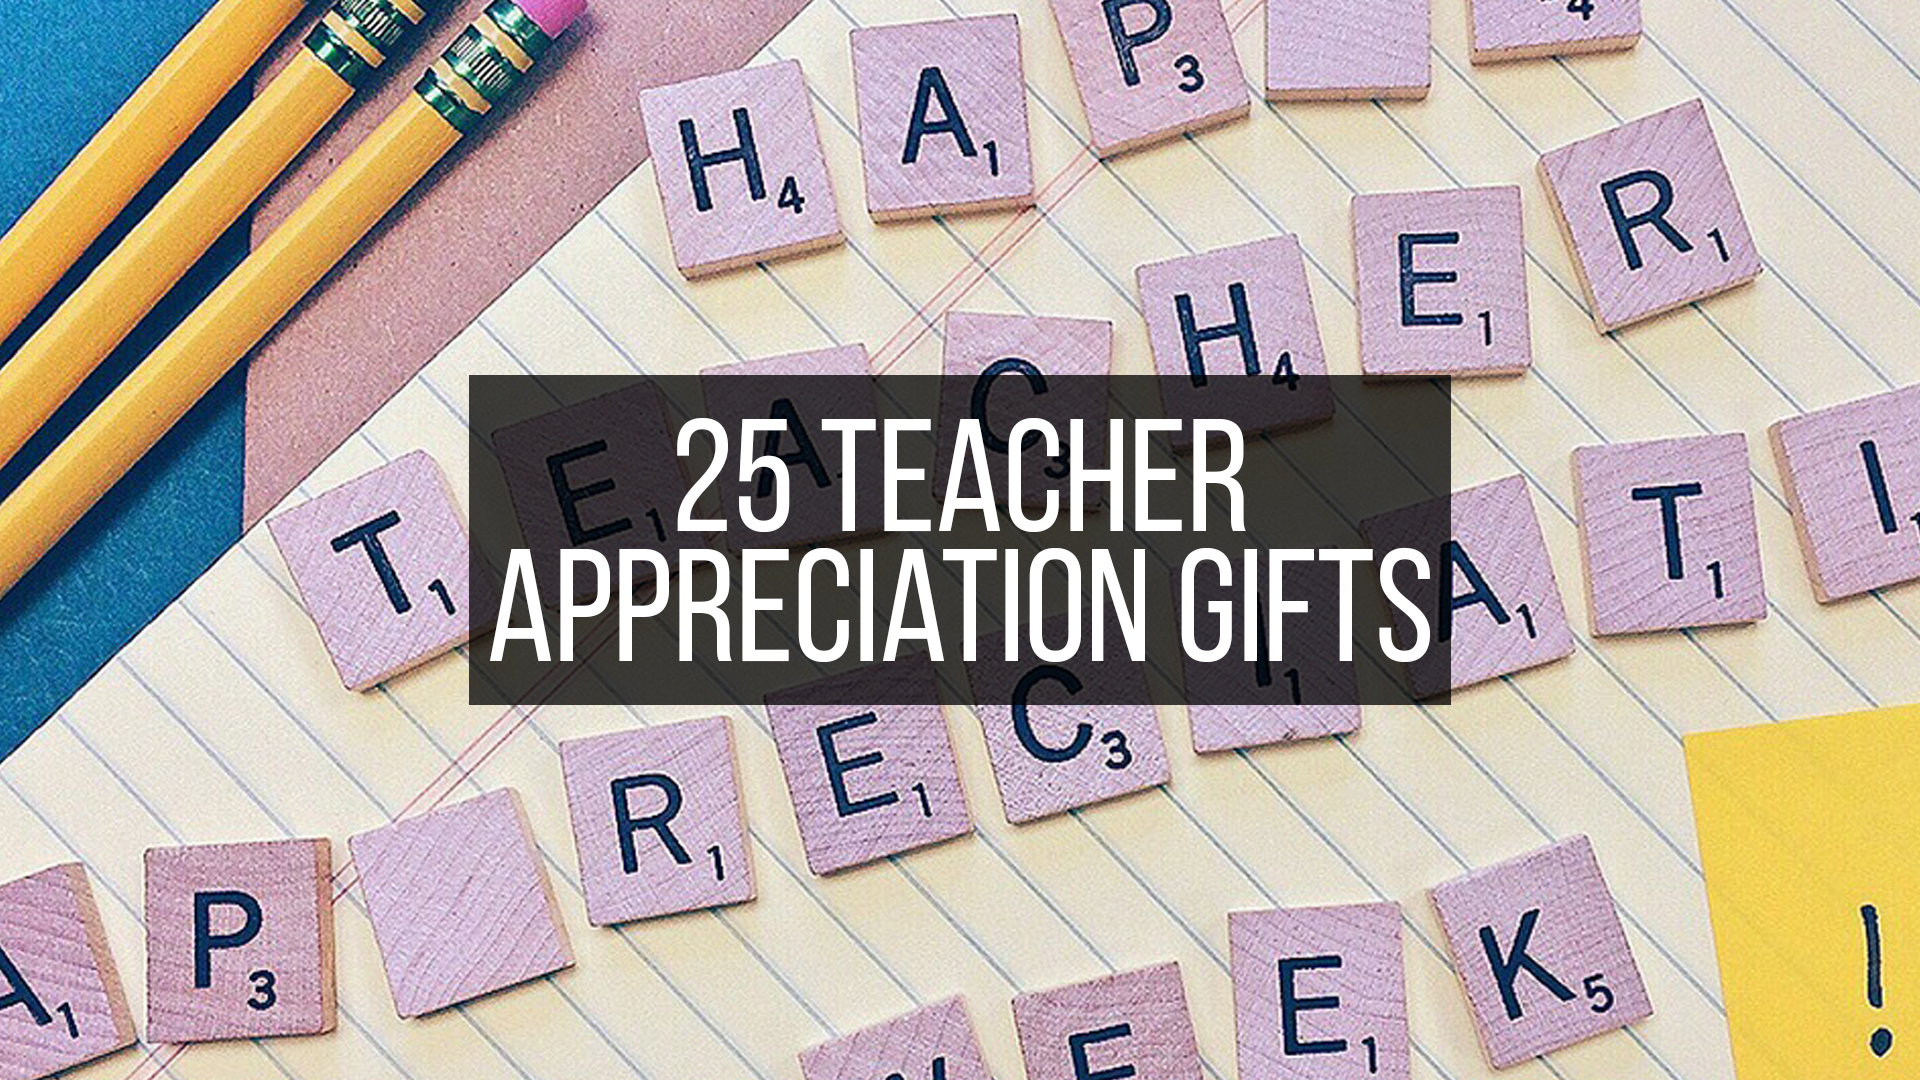 25 teacher appreciation gifts featured image